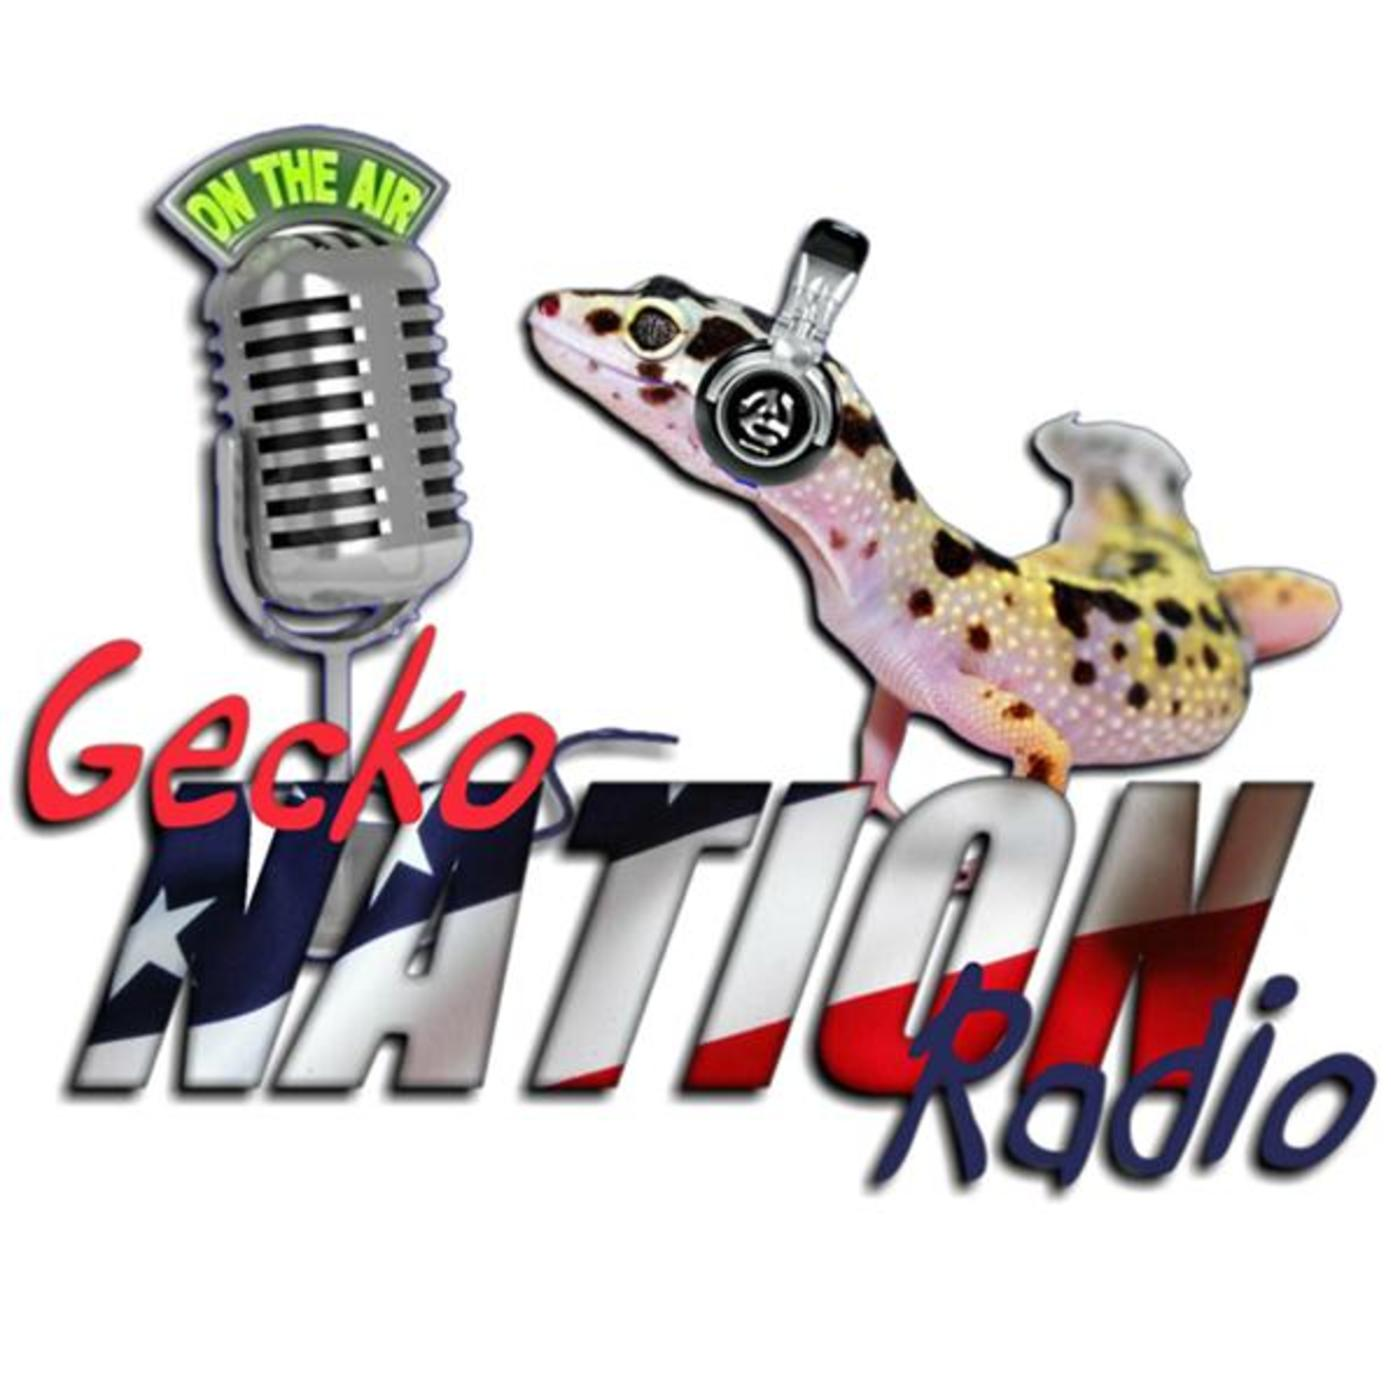 Gecko Nation Radio